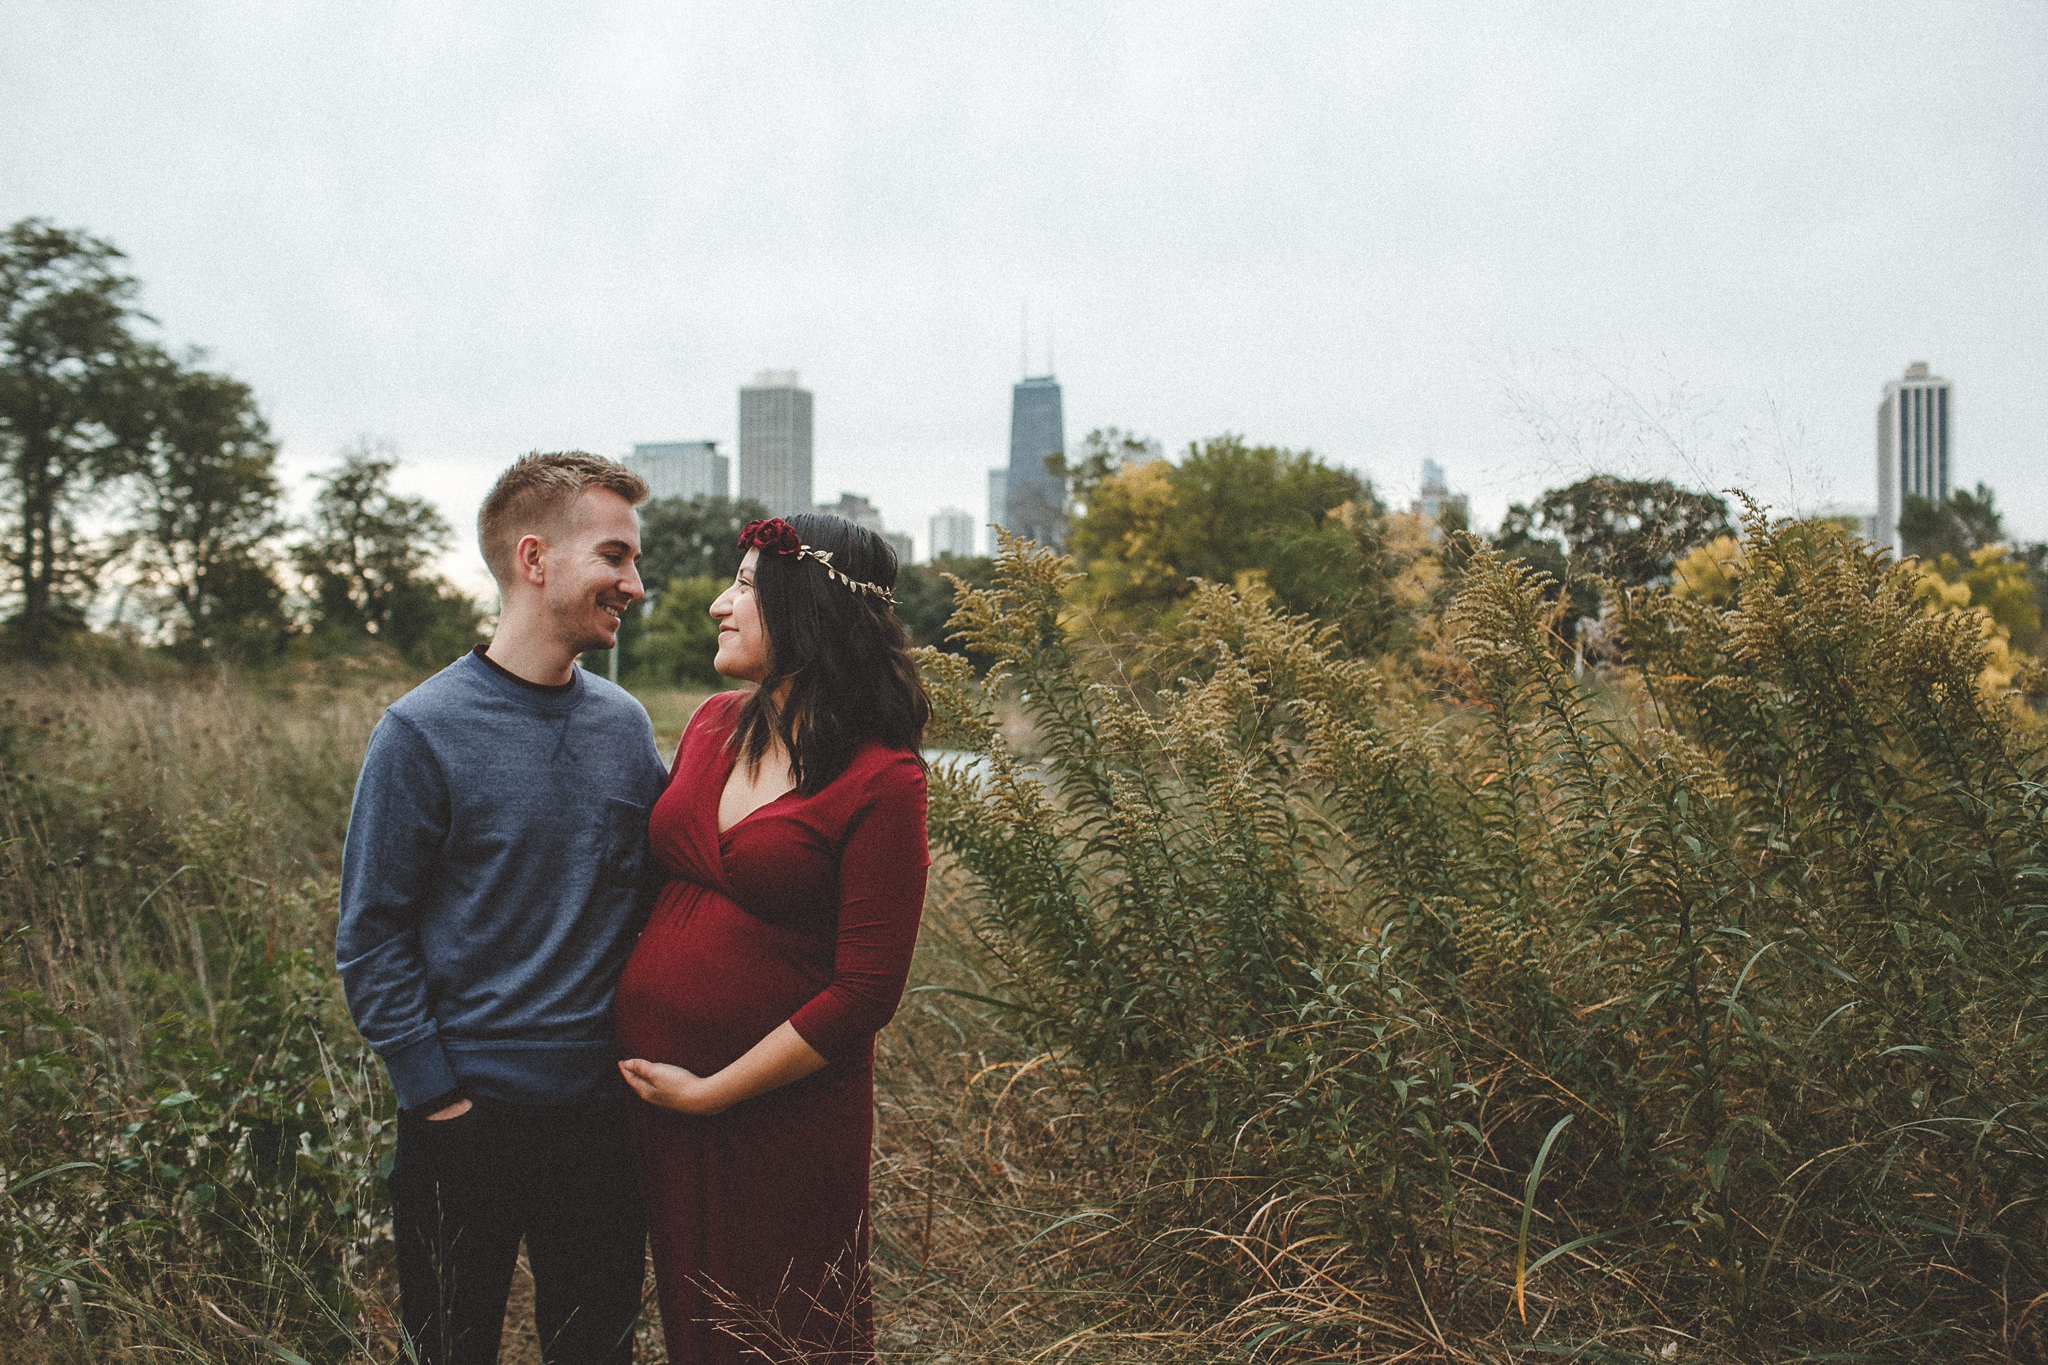 chicago_lincoln_park_family_maternity_photograper_0008.jpg